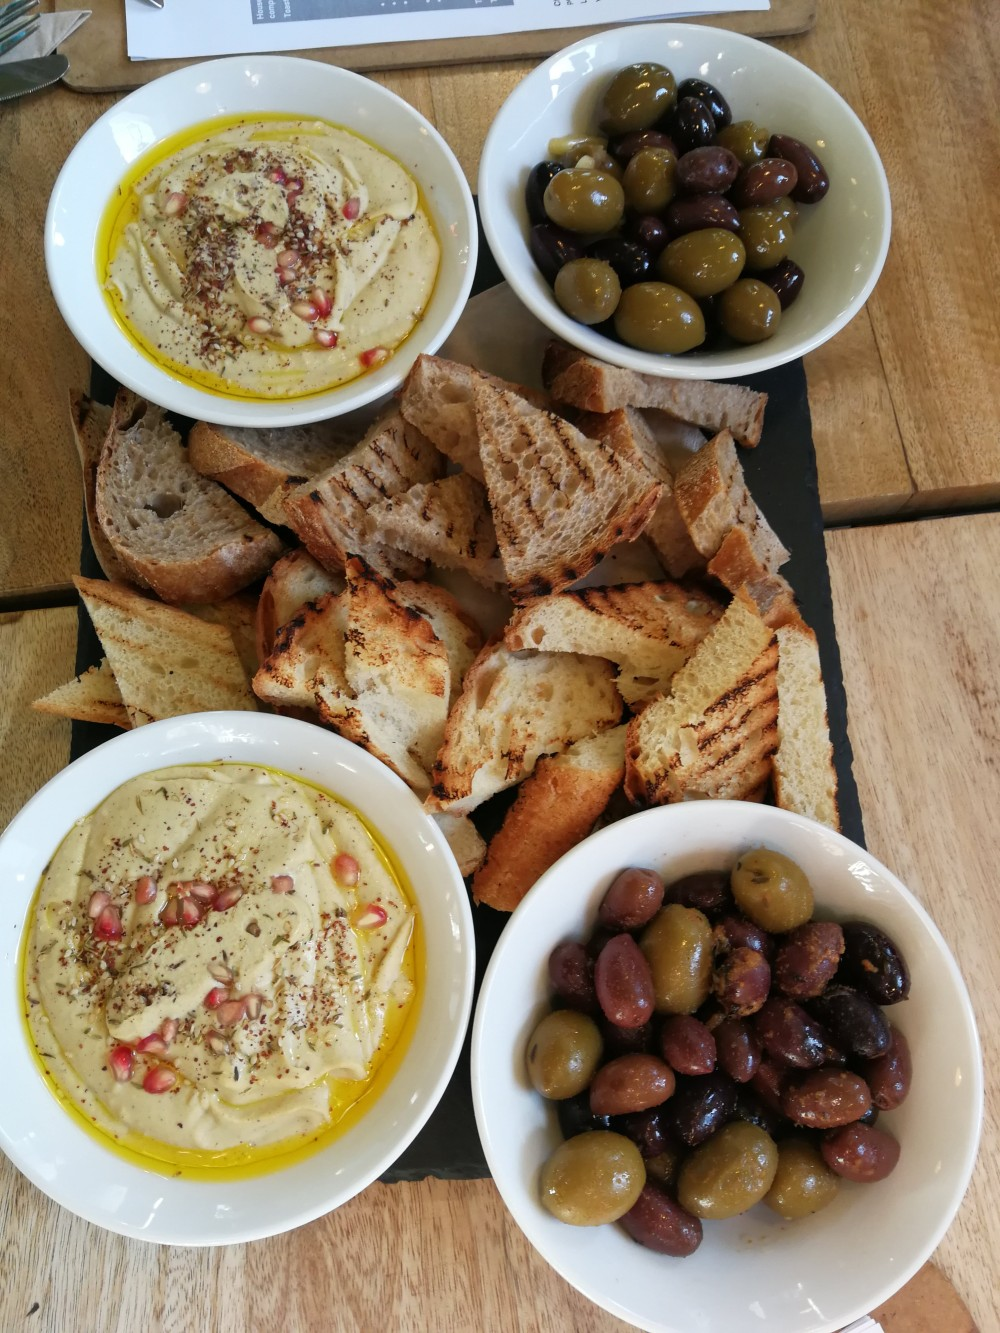 Hummus, bread and olives - photo from above